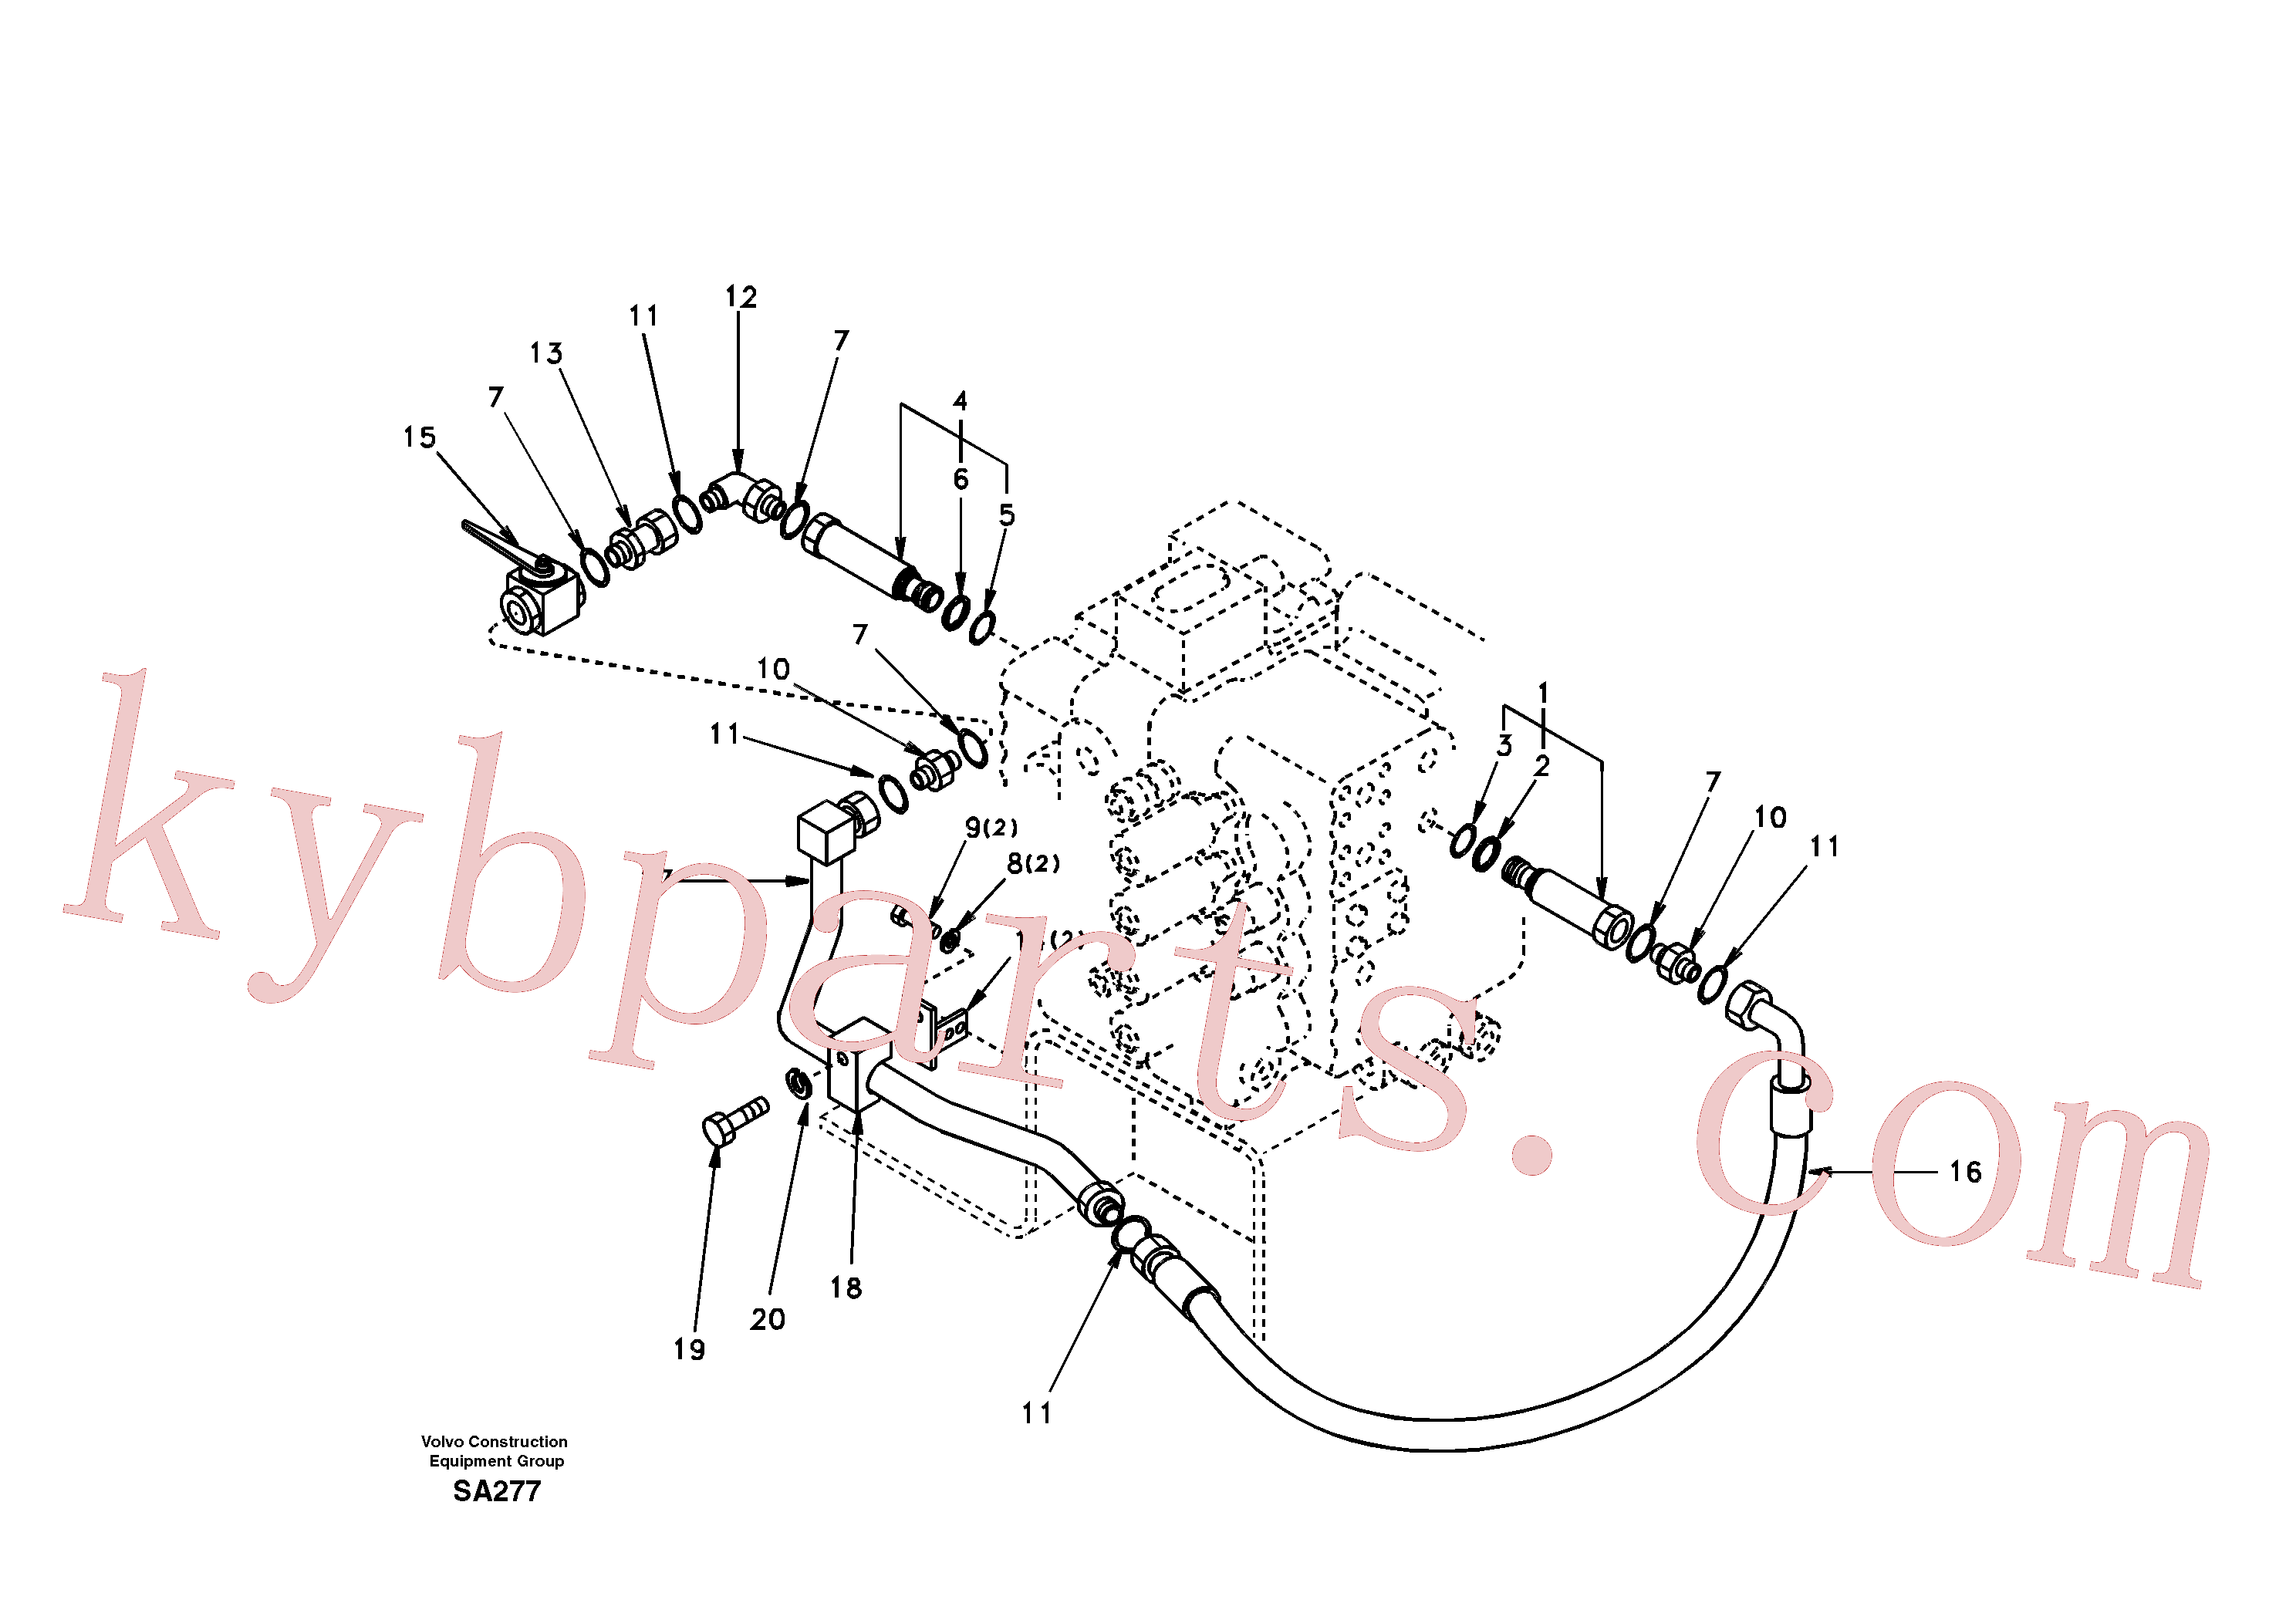 SA9419-11040 for Volvo Working hydraulic, hammer and shear for 2nd pump flow(SA277 assembly)